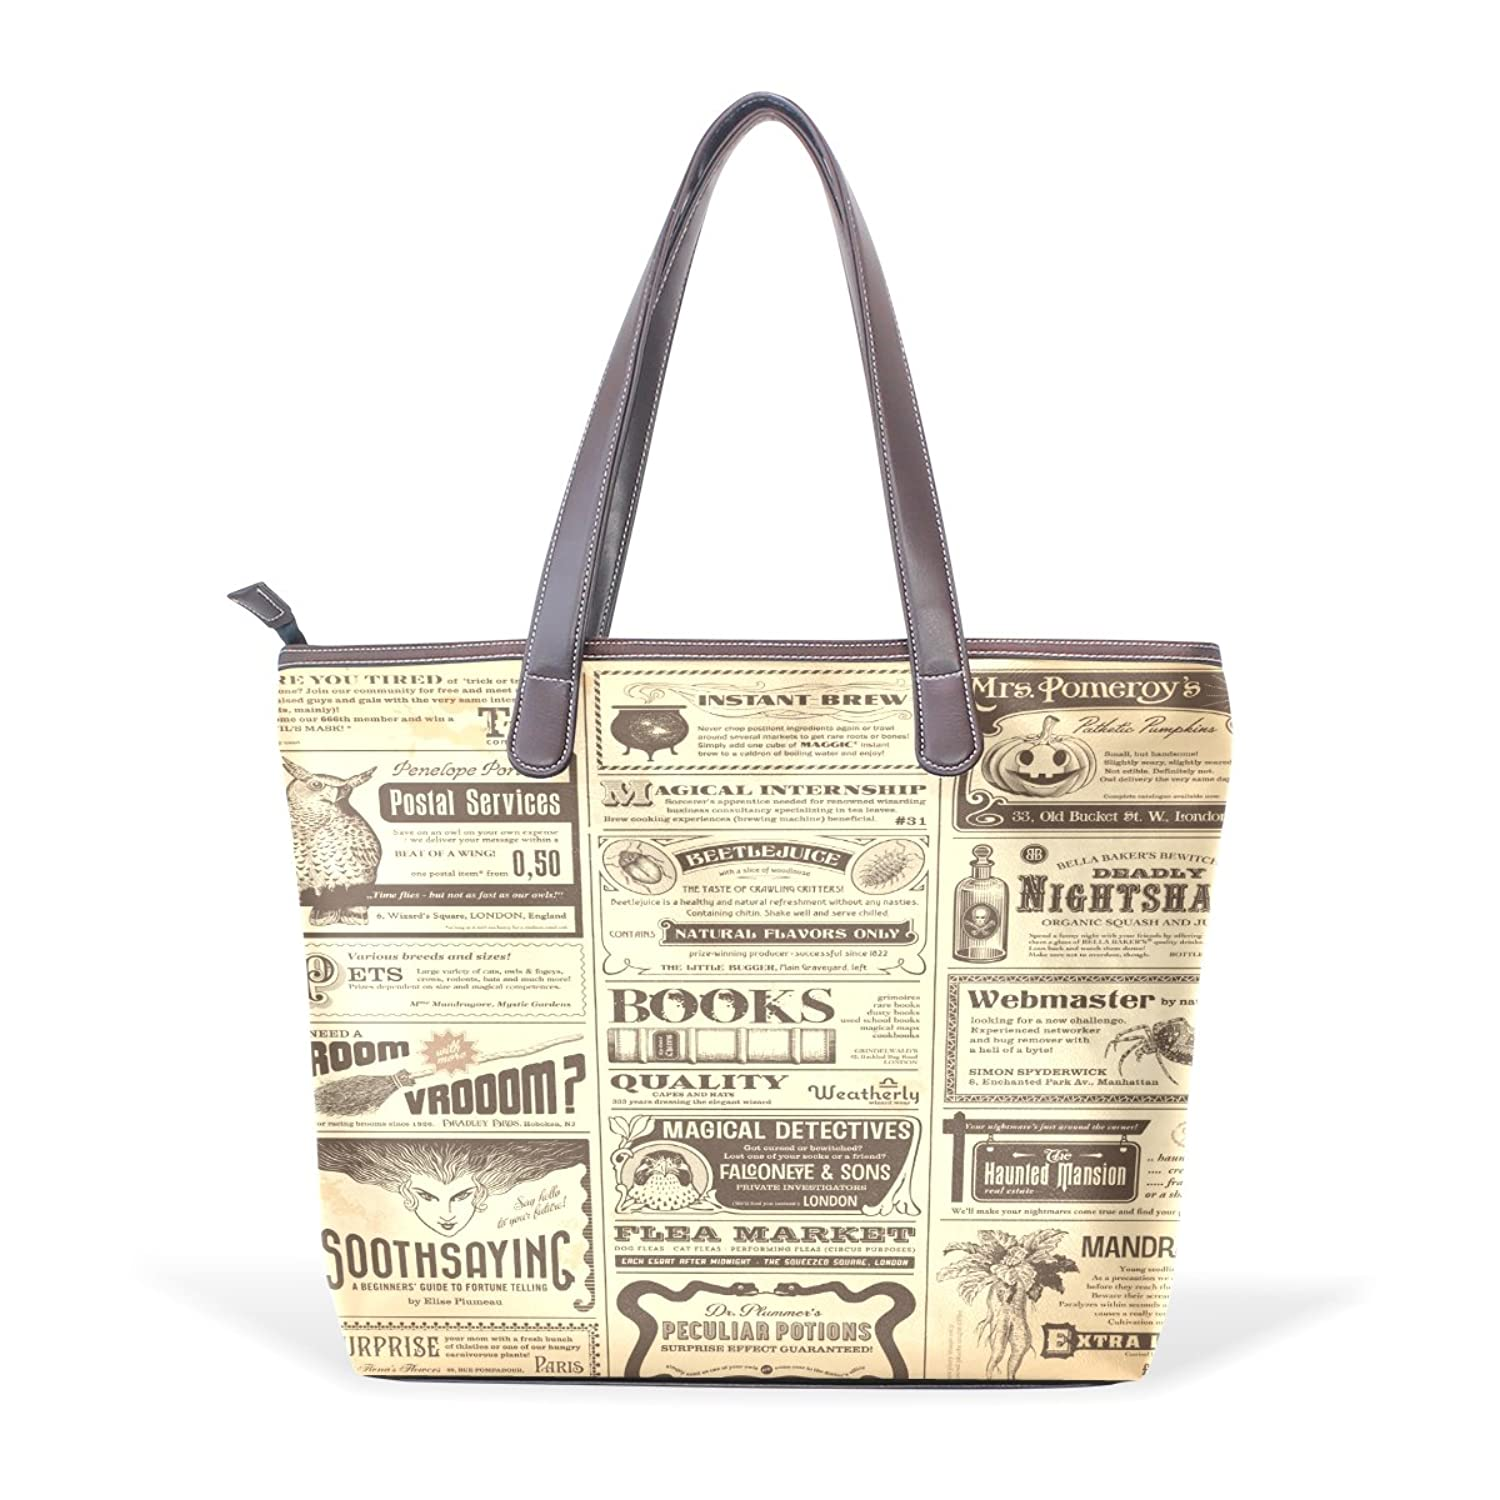 CCBHGY Women's Yellow Pages Ads pattern Leather Handbag Zipper Shoulder Bag Tote Bag